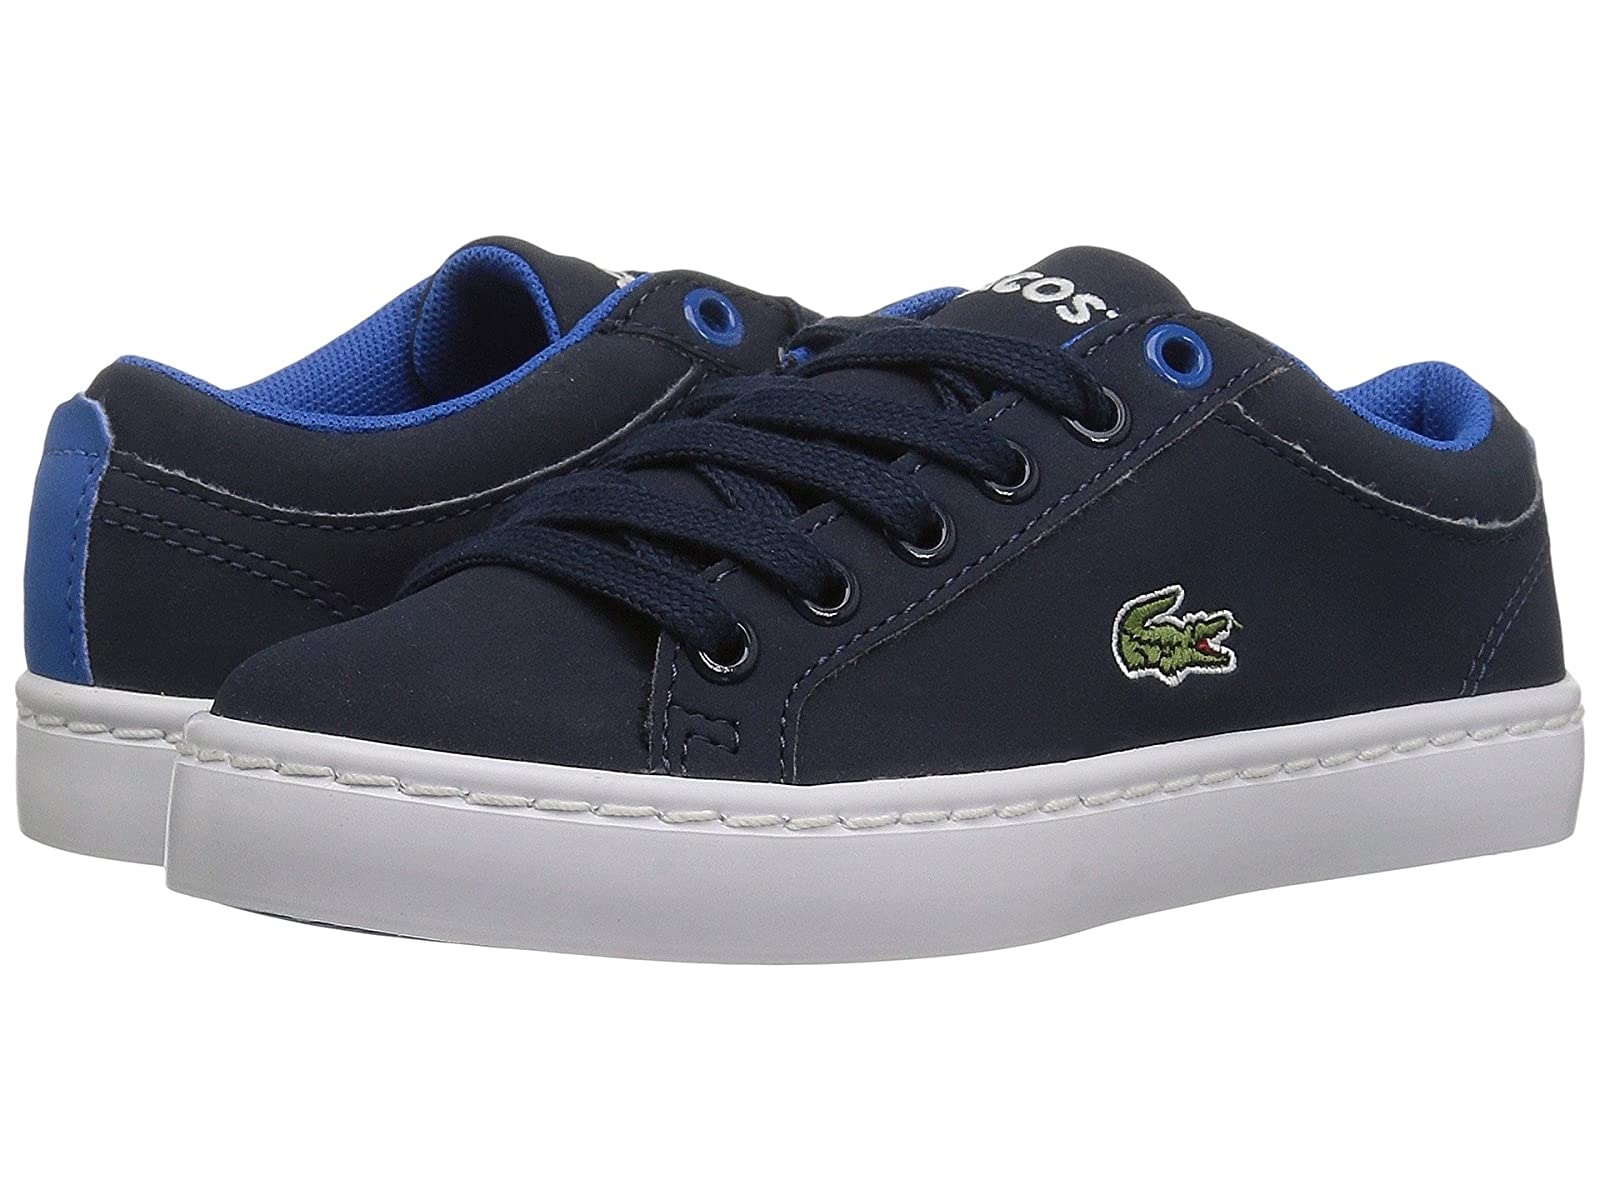 Lacoste Kids Straightset Lace 417 1 (Little Kid)Cheap and distinctive eye-catching shoes